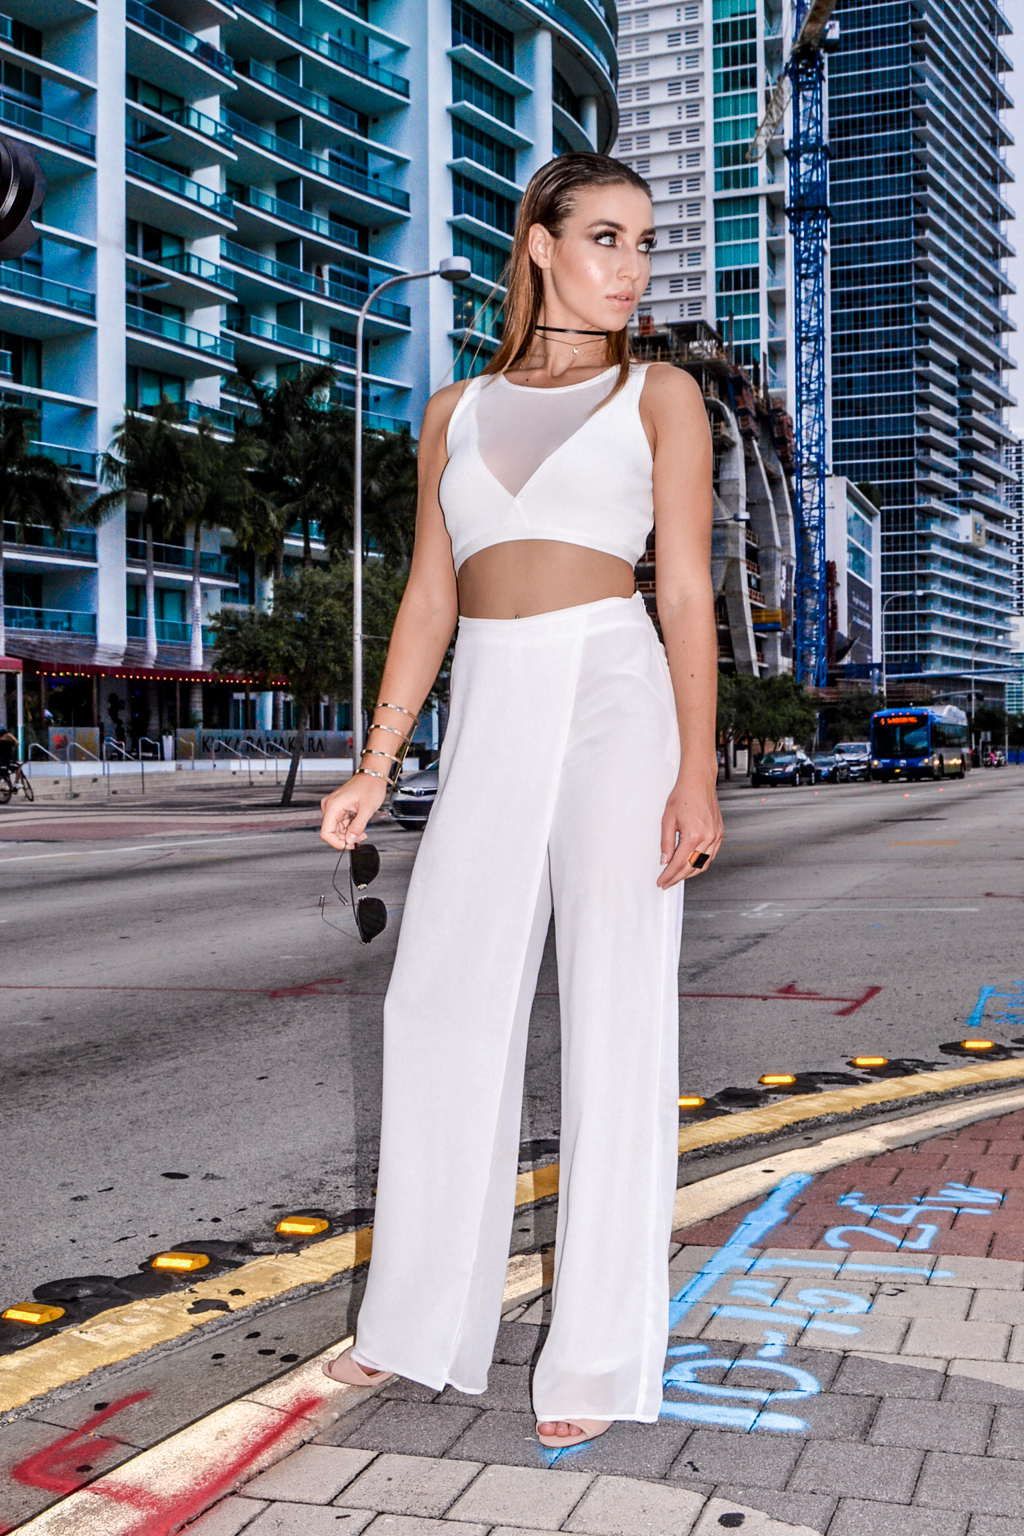 behind-the-scenes-style-link-miami-illy-perez-fashion-photography-10.jpg